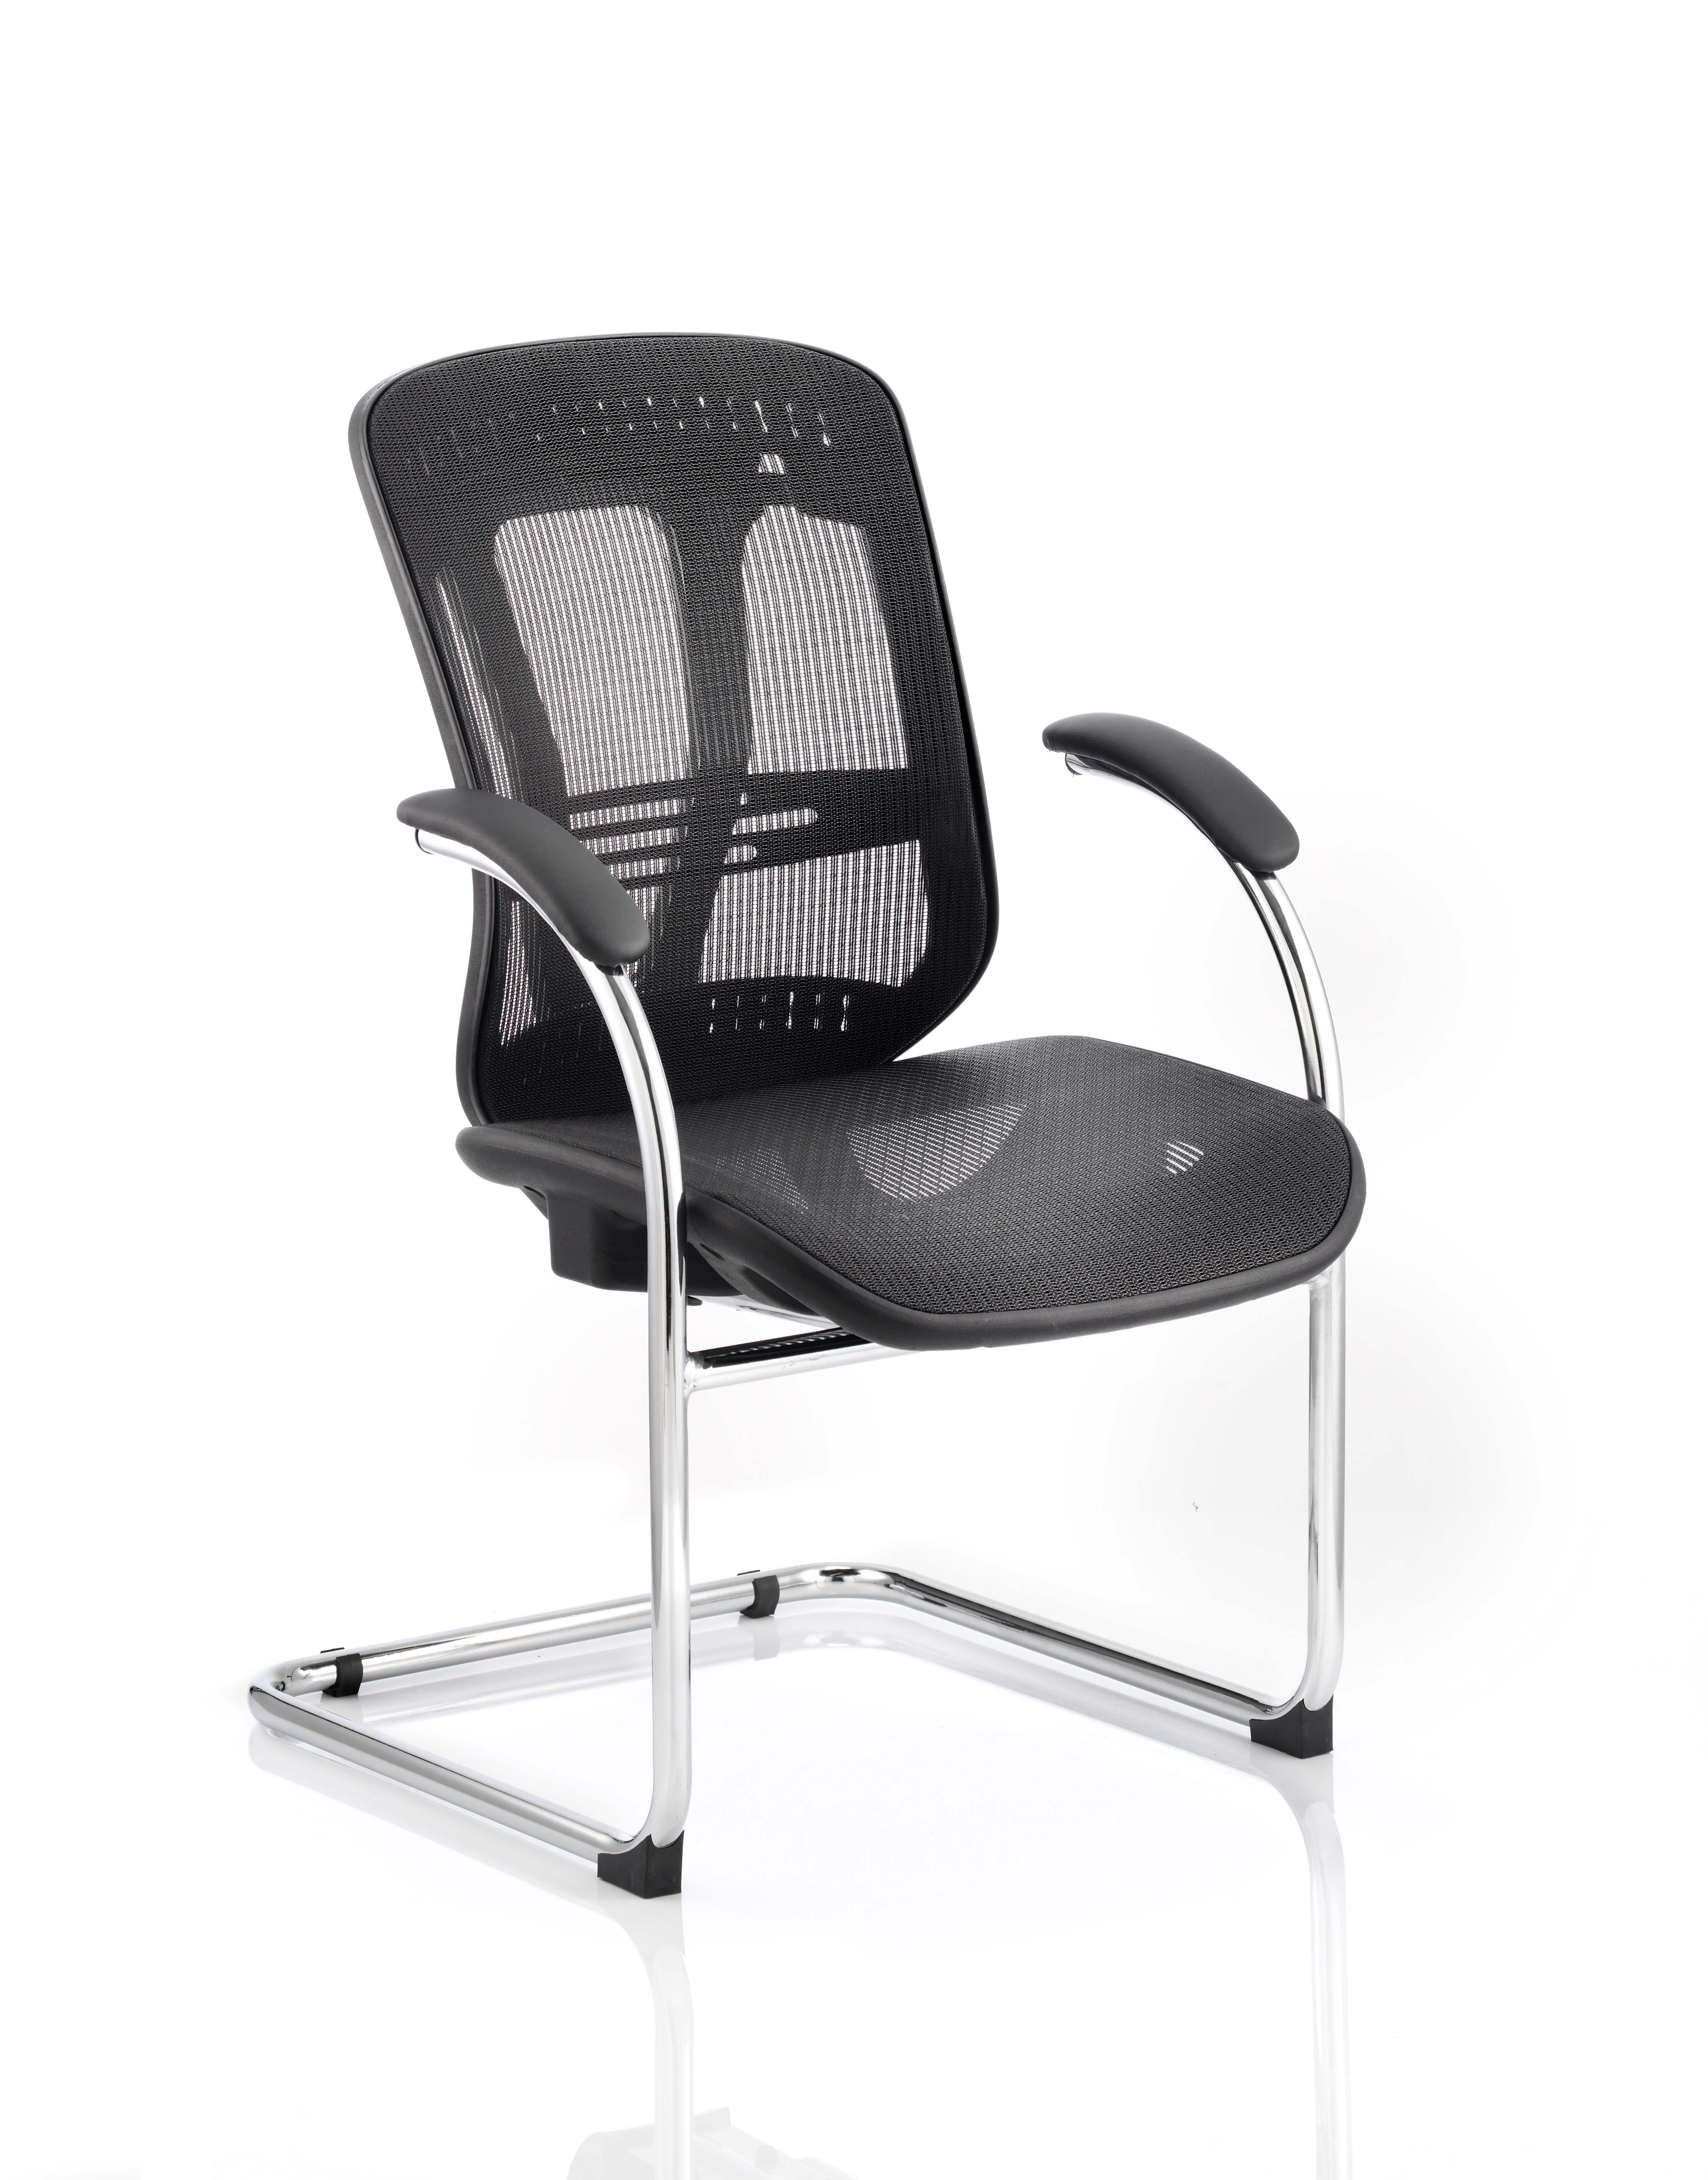 Mirage II Cantilever Chair Black Mesh With Arms